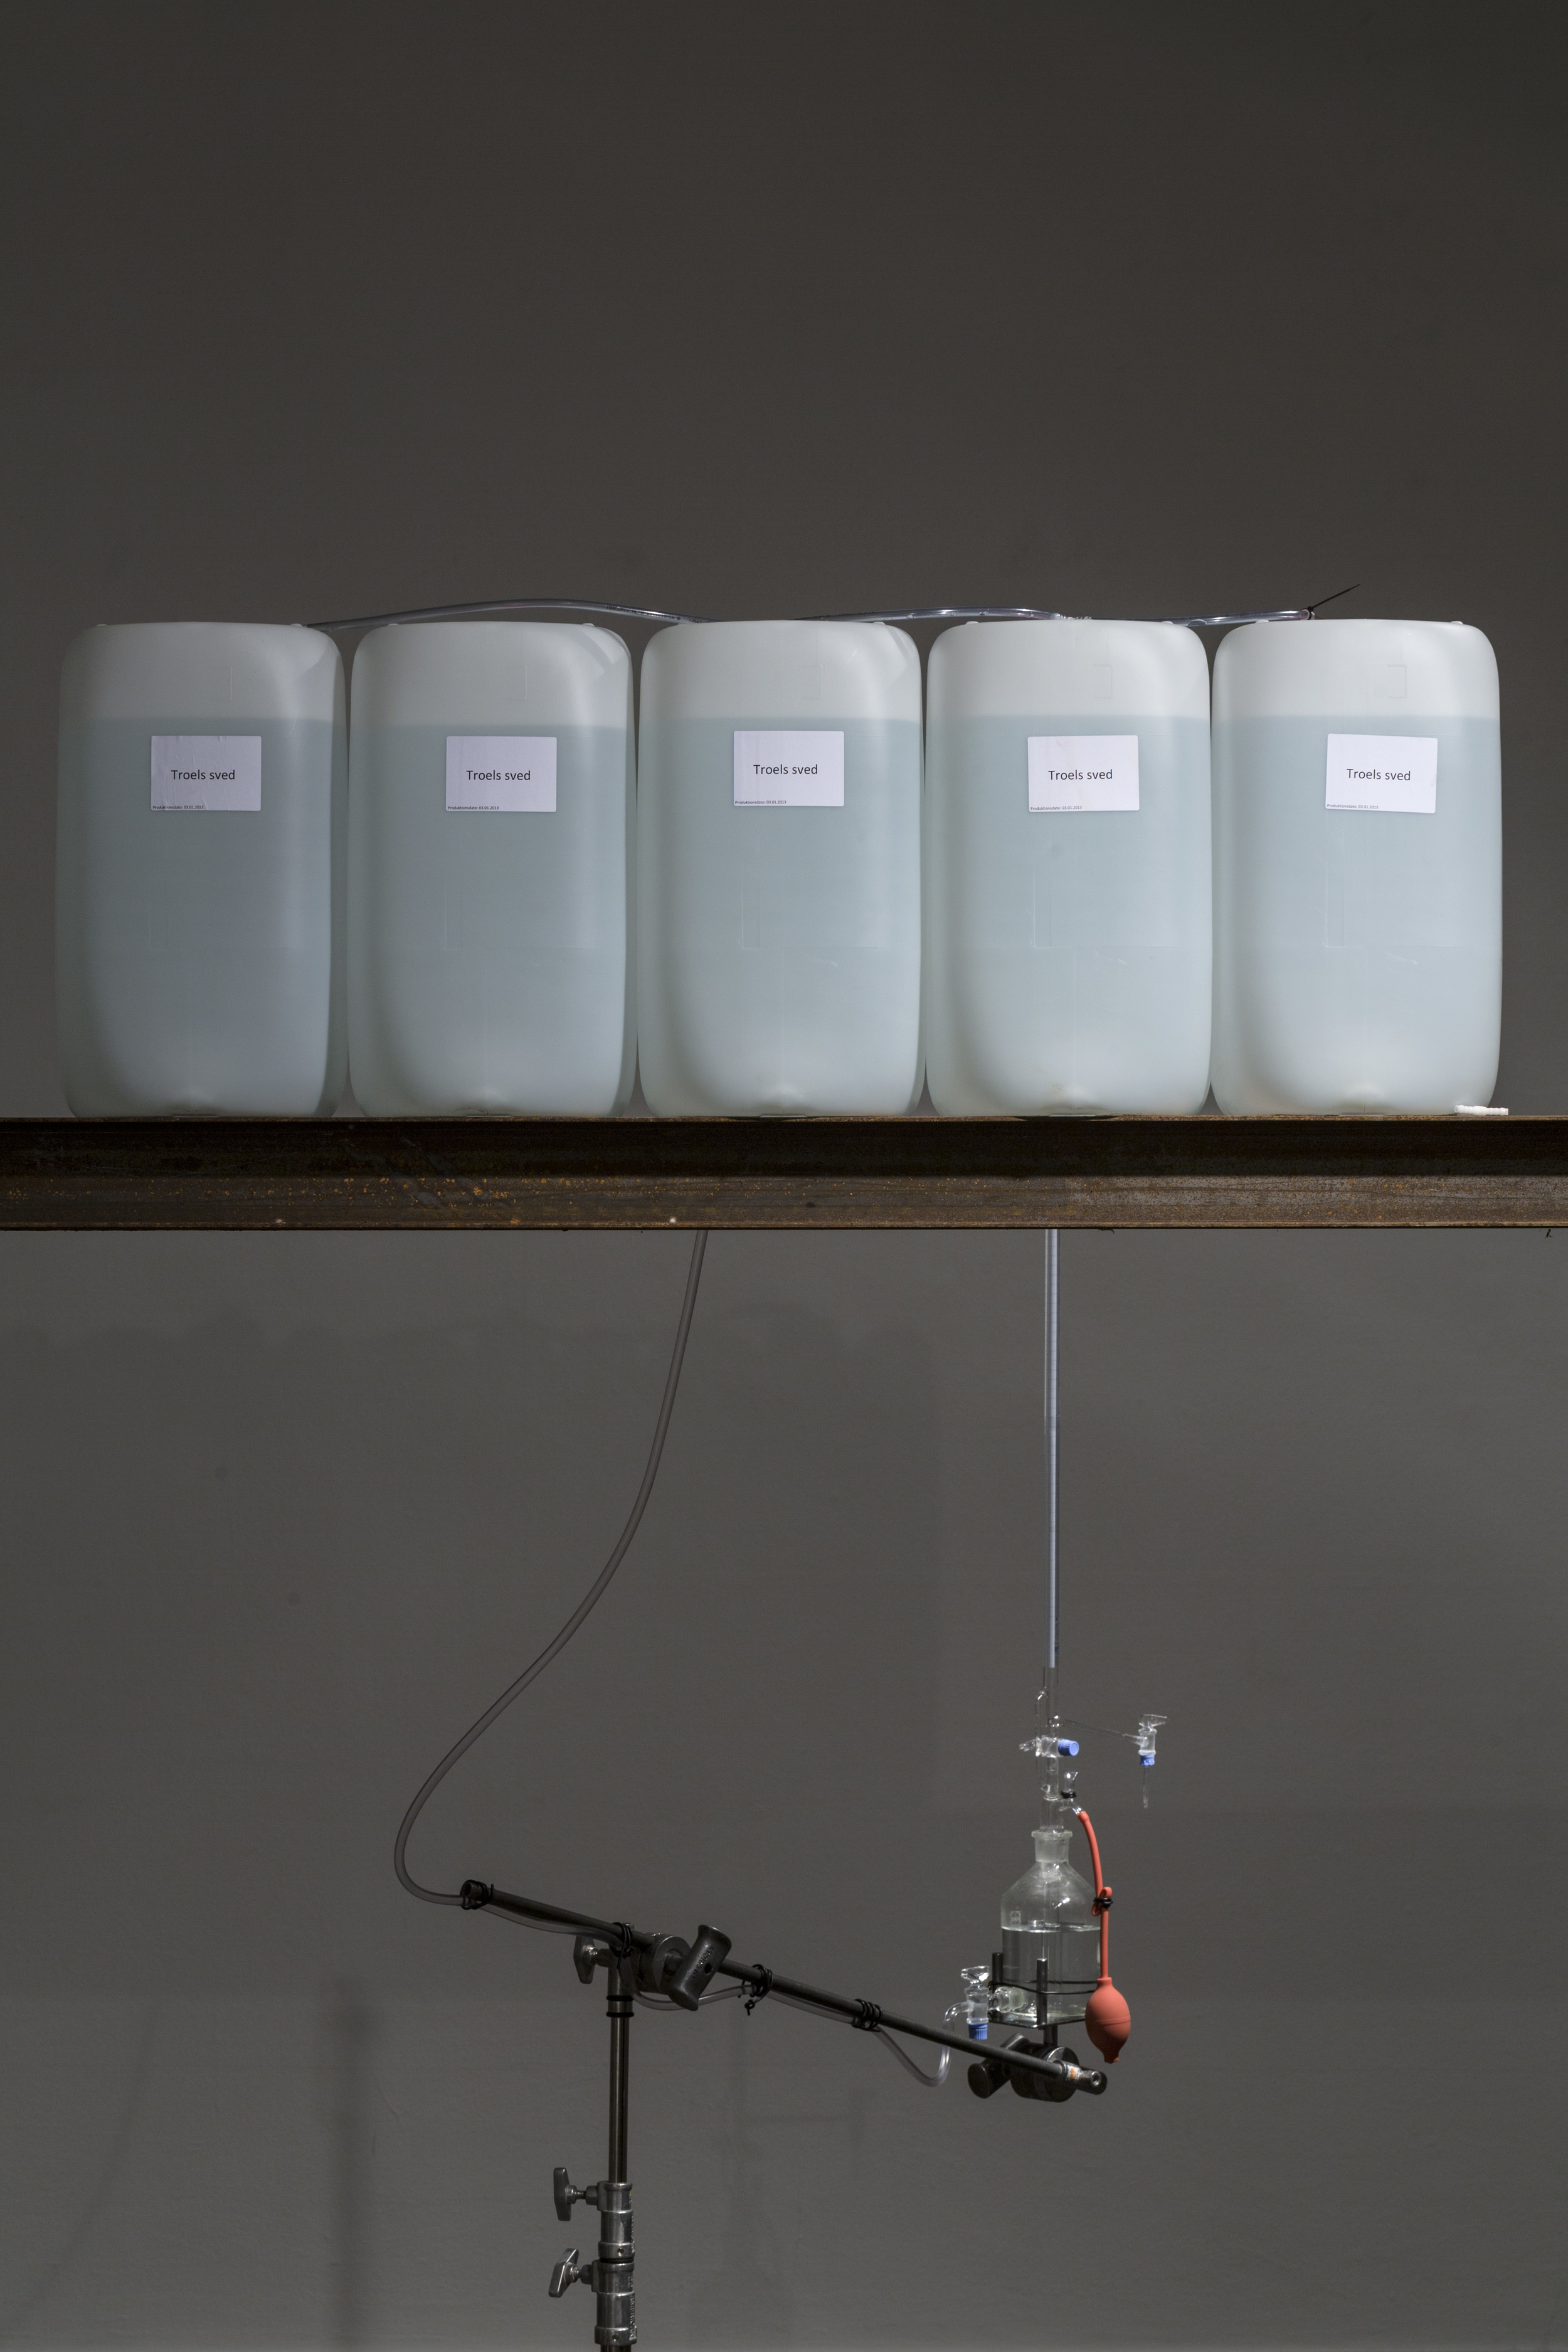 SELF-PORTRAIT, RESPIRATION AND PERSIRATION  Detail  Materials: Plastic cotainers, 120l of artificial sweat, iron beam, hoses, laboratory glas equiptment, aluminium plate, heating element, ventilator,glass, paper, wooden frame.